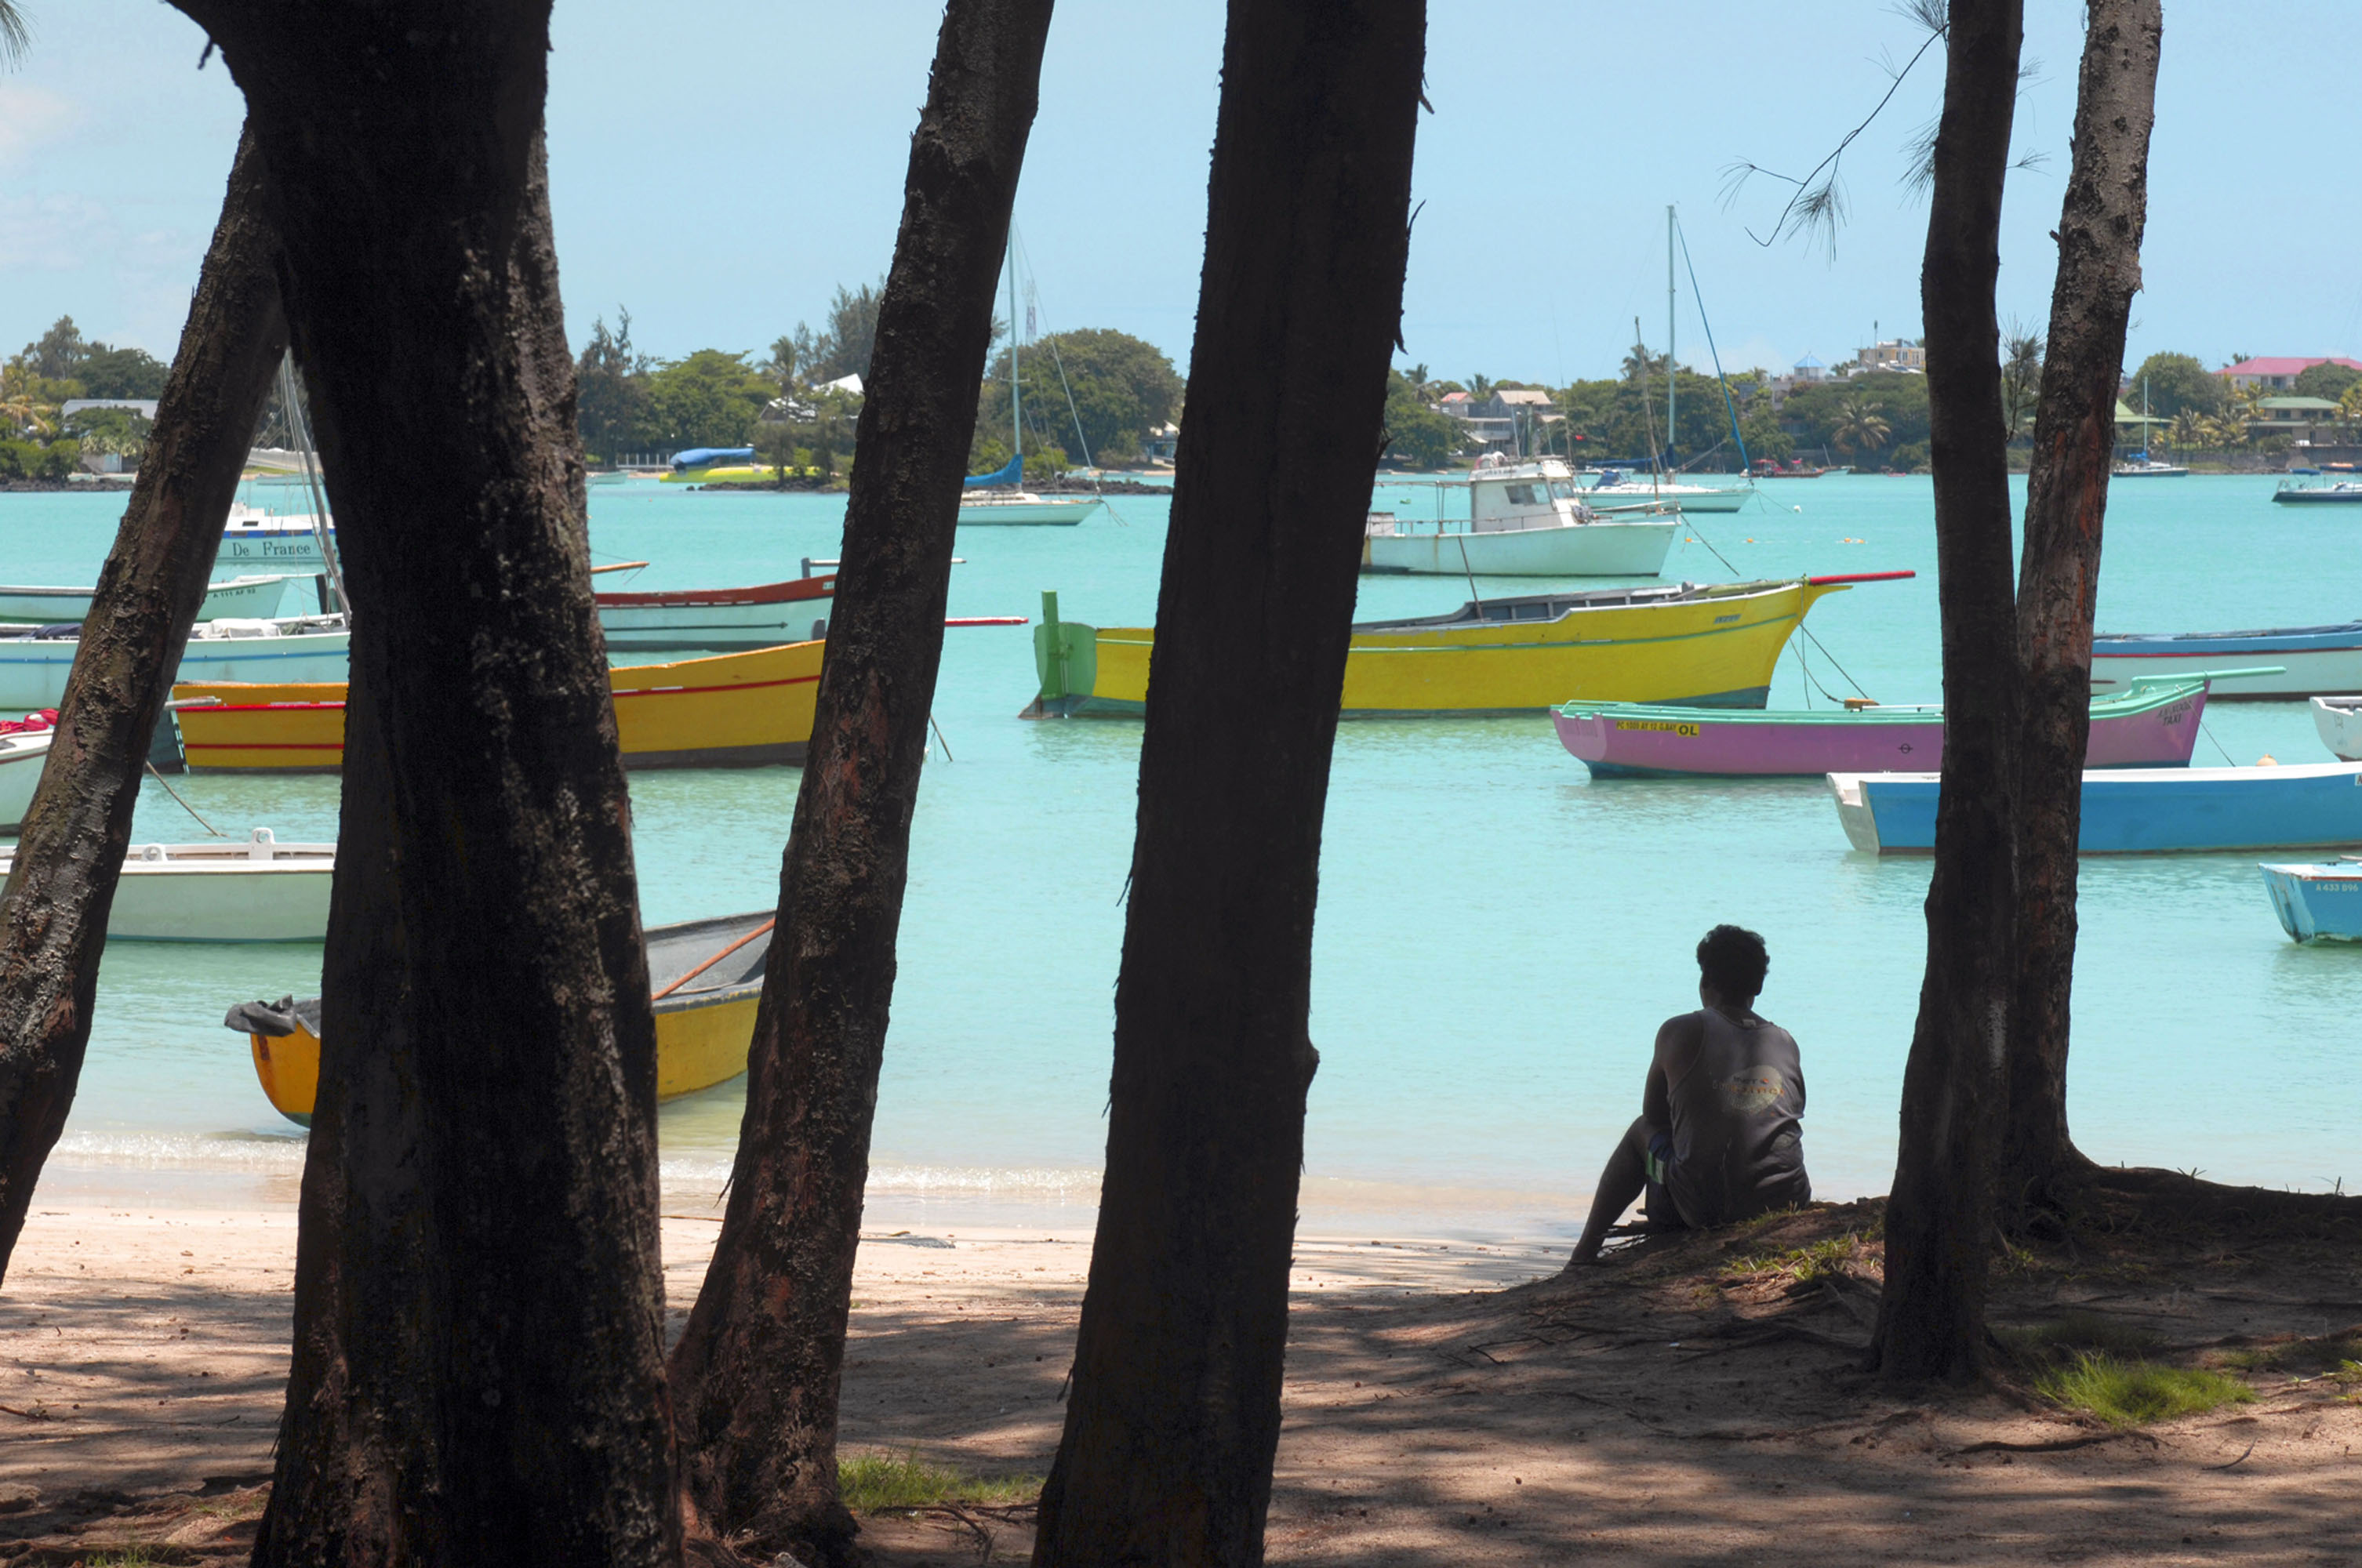 bloomberg.com - Kamlesh Bhuckory - Mauritius Aims to Develop Fishing Industry to Be Economic Pillar